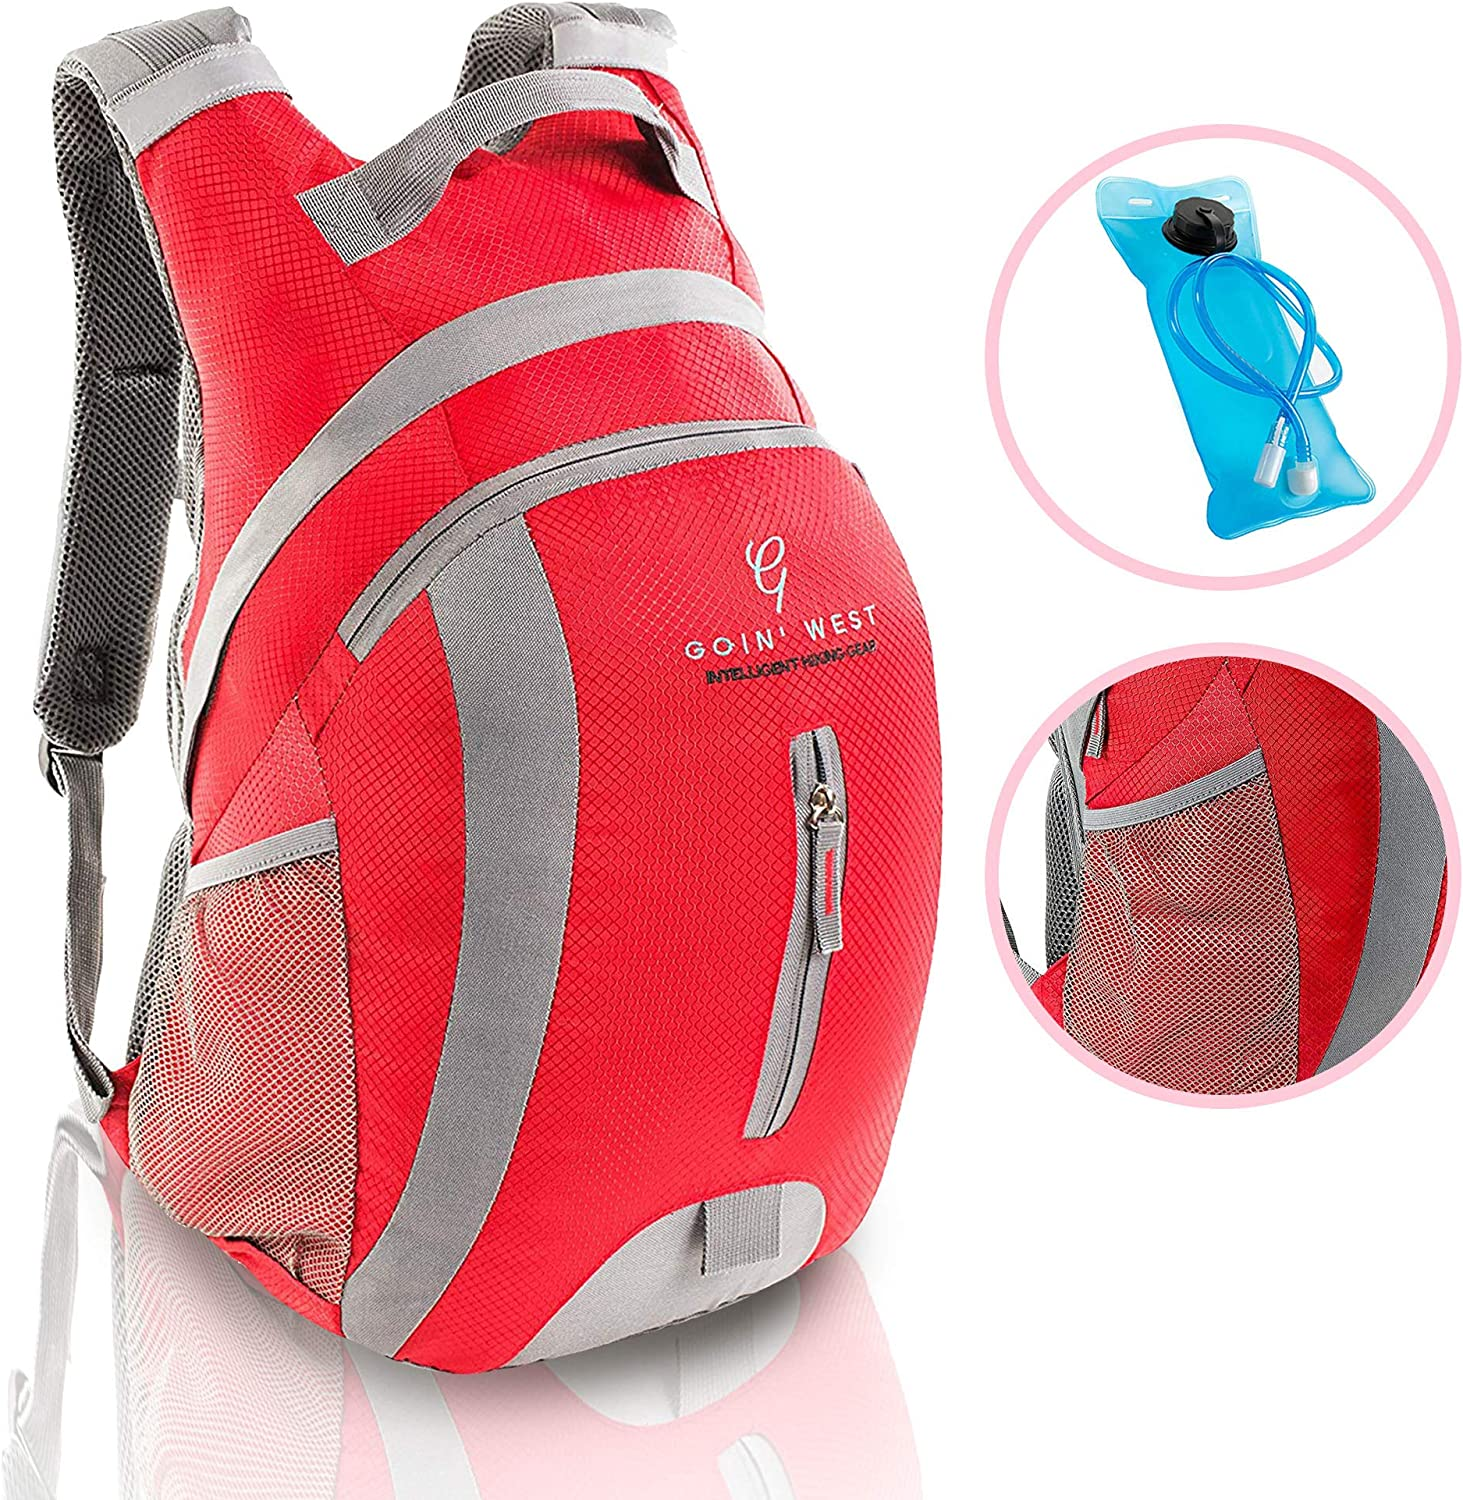 30L Hydration Pack Recommended Hiking Backpack 4 years warranty Ultralight Extremely Comfo -